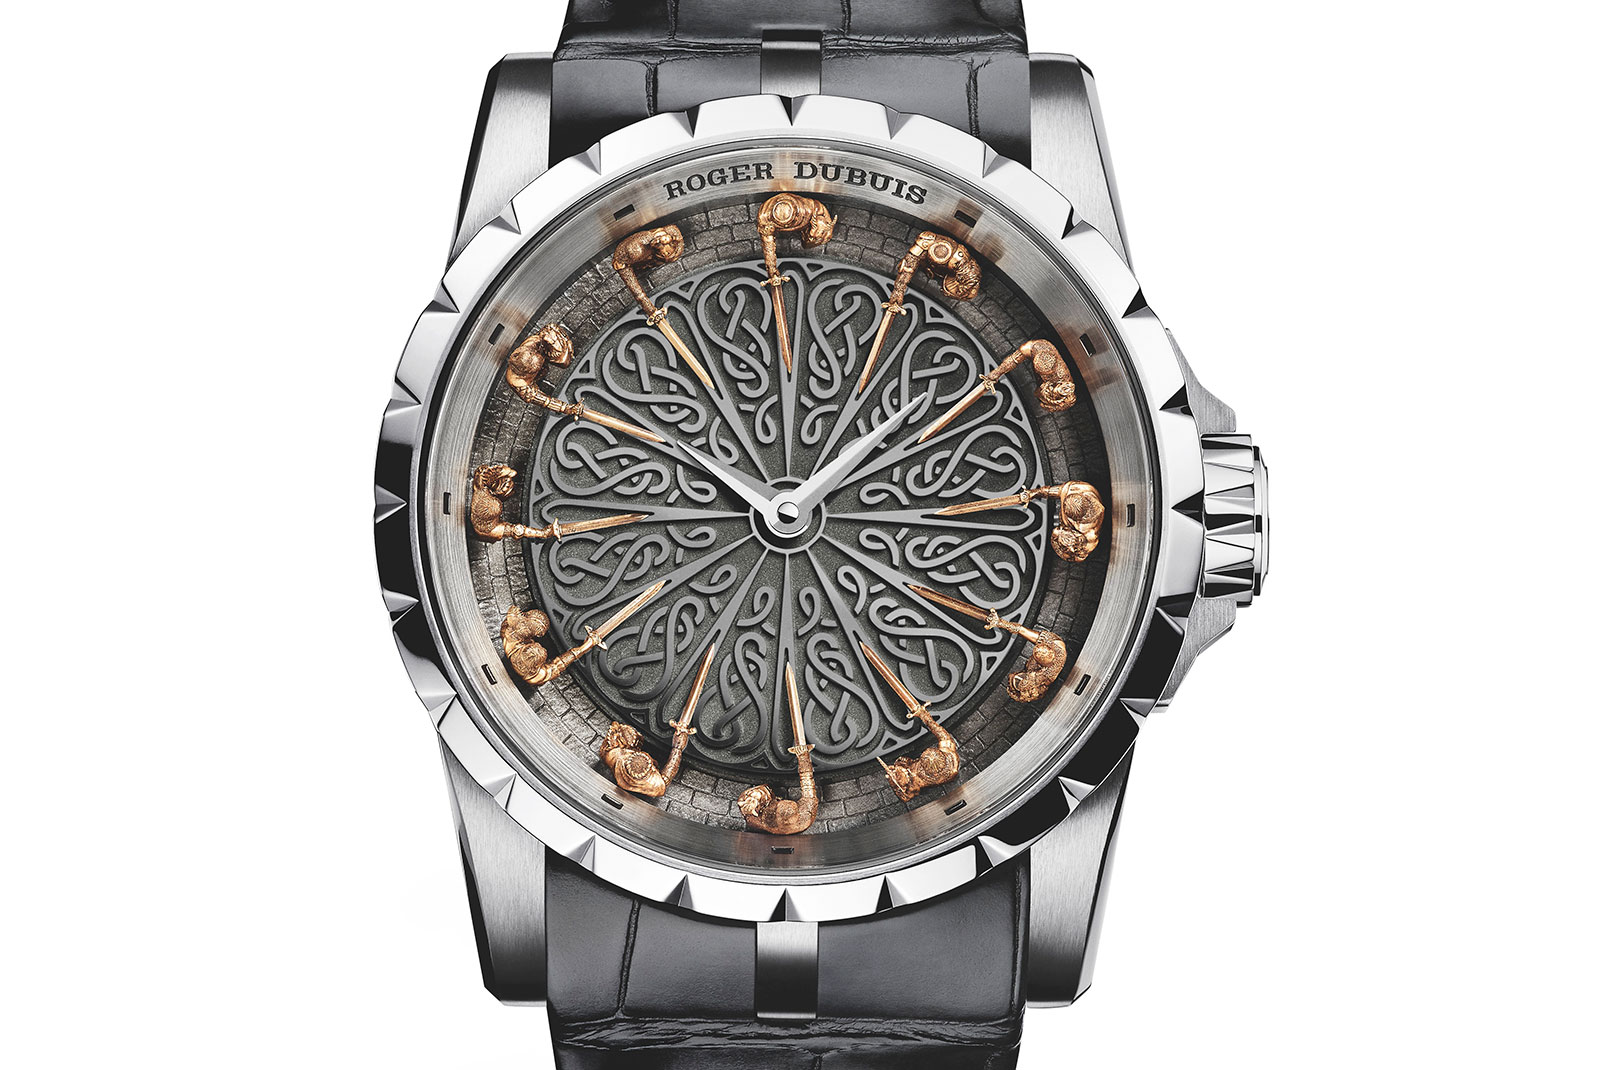 Knights Of Round Table Watch Watches By Sjx Introducing The Roger Dubuis Knights Of The Round